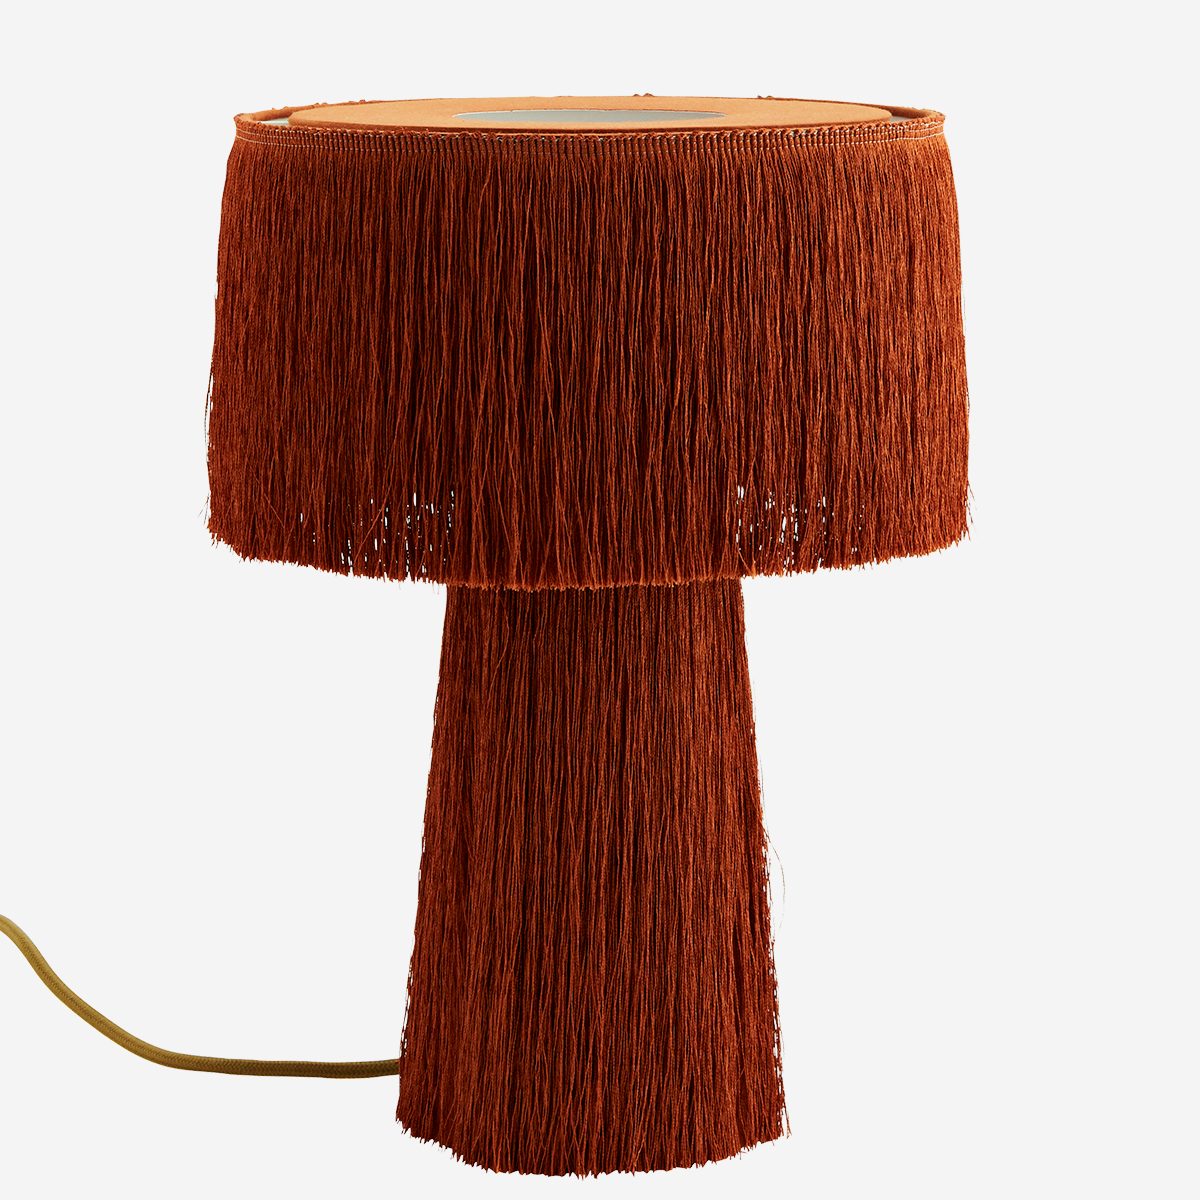 Table Lamp with Tassels Burned Orange - Madam Stoltz